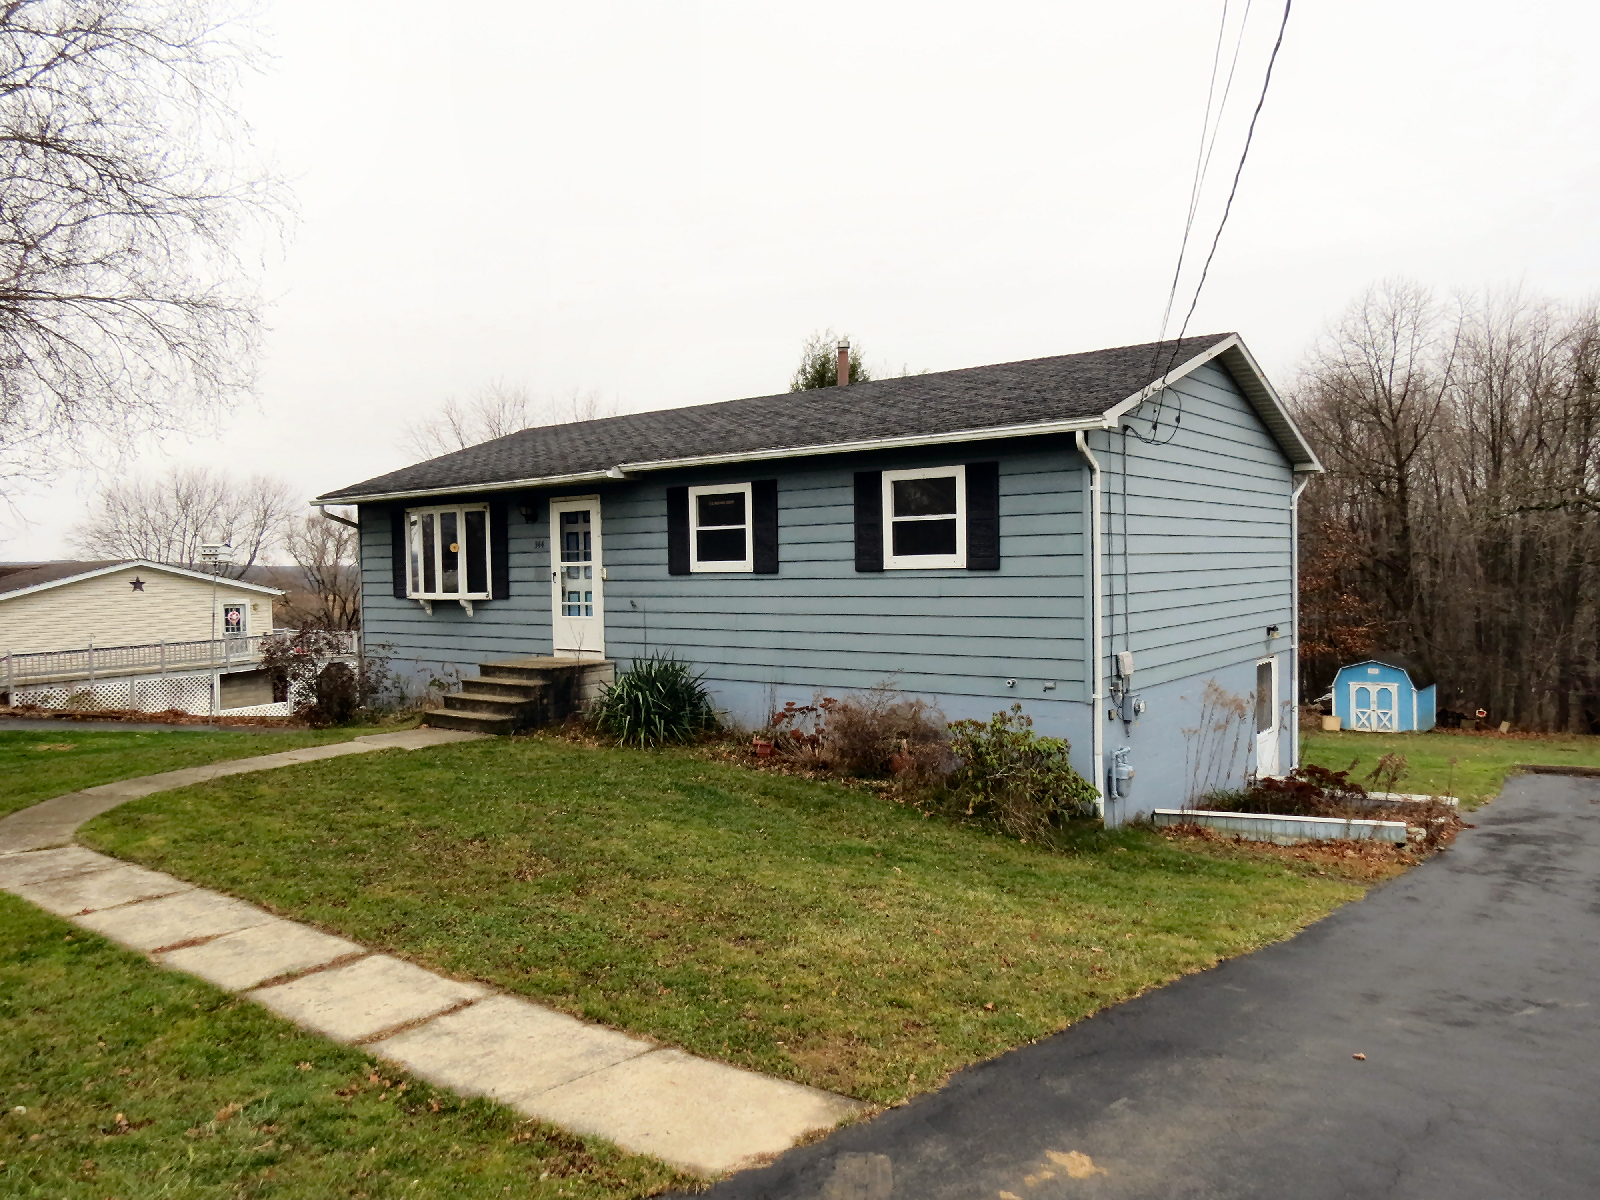 344 Ross Drive, Saegertown, Pennsylvania 16433